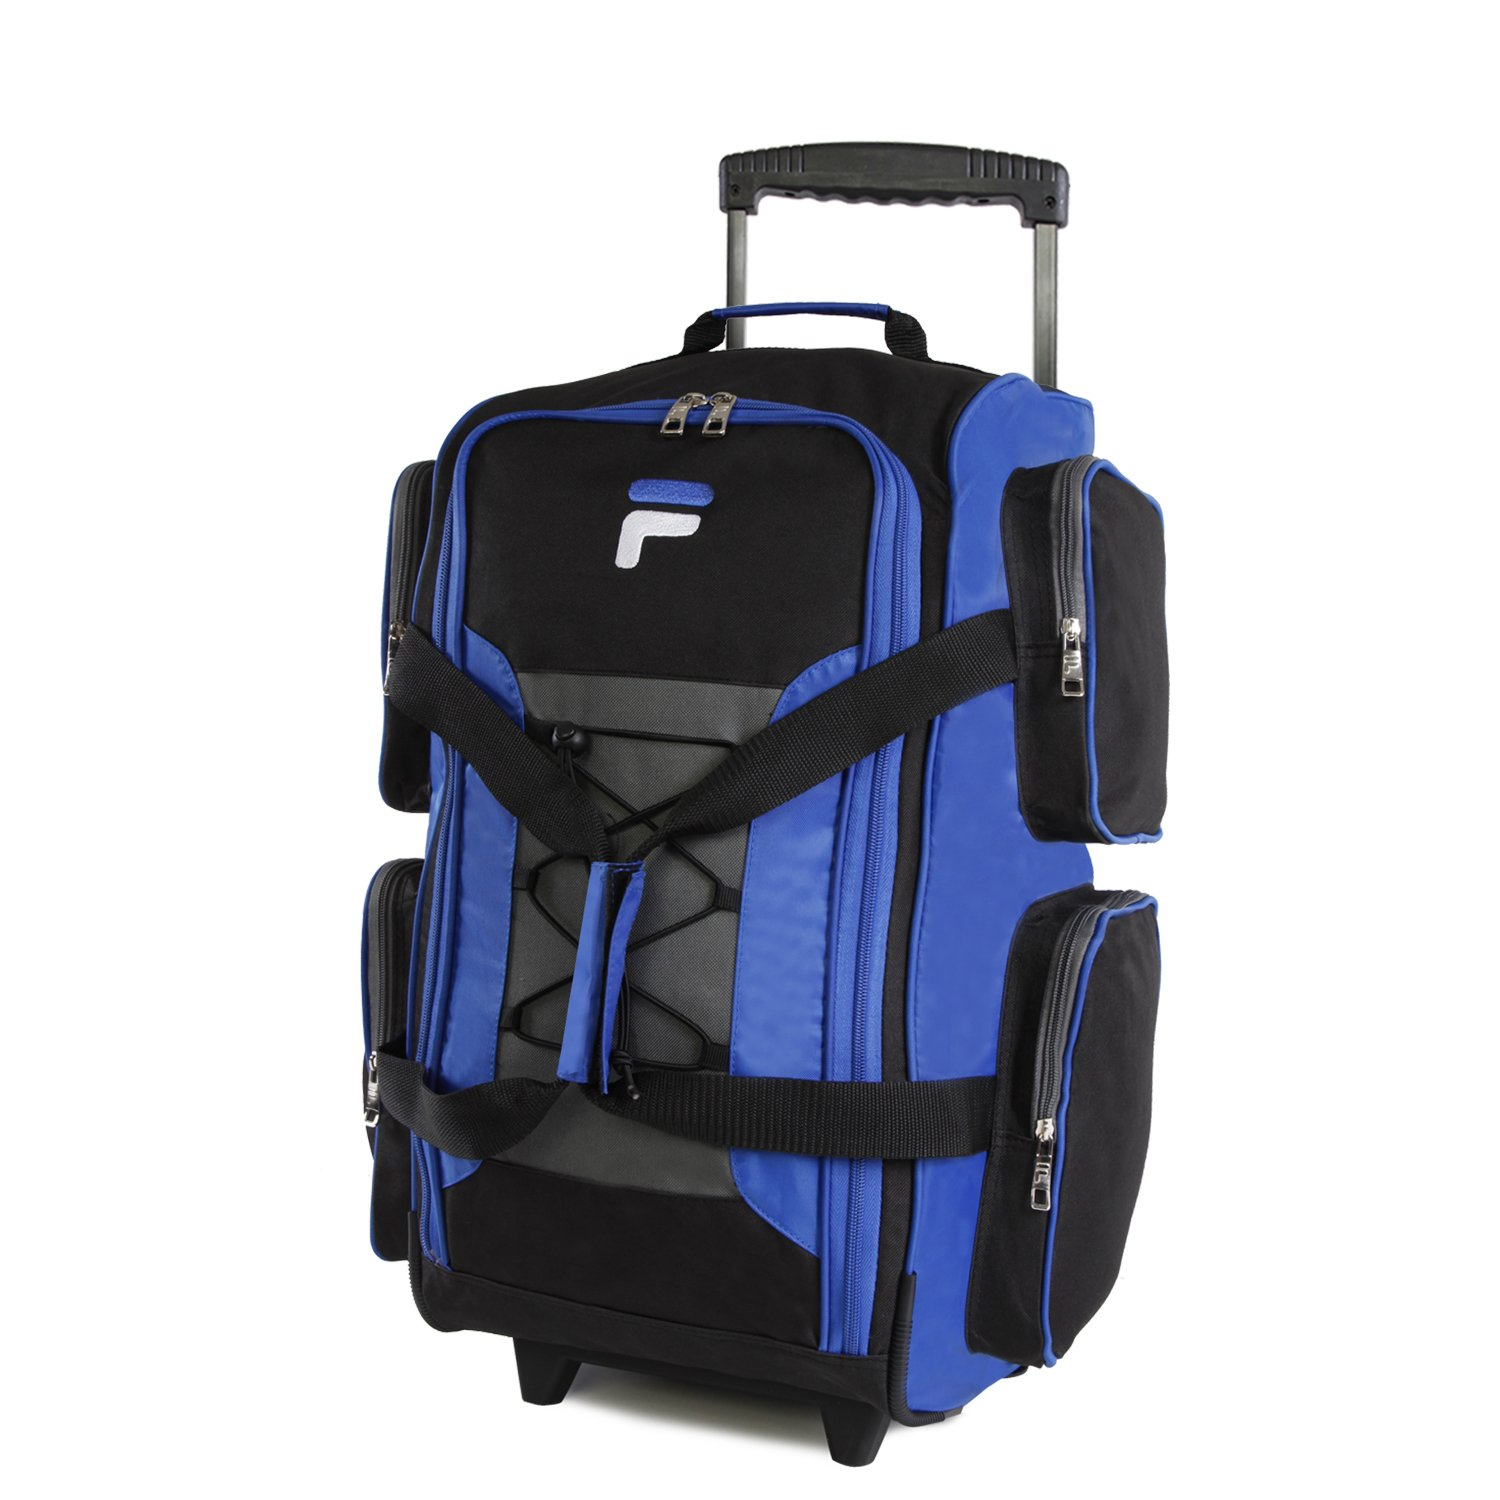 Fila 22'' Lightweight Carry On Rolling Duffel Bag,  Blue,  One Size